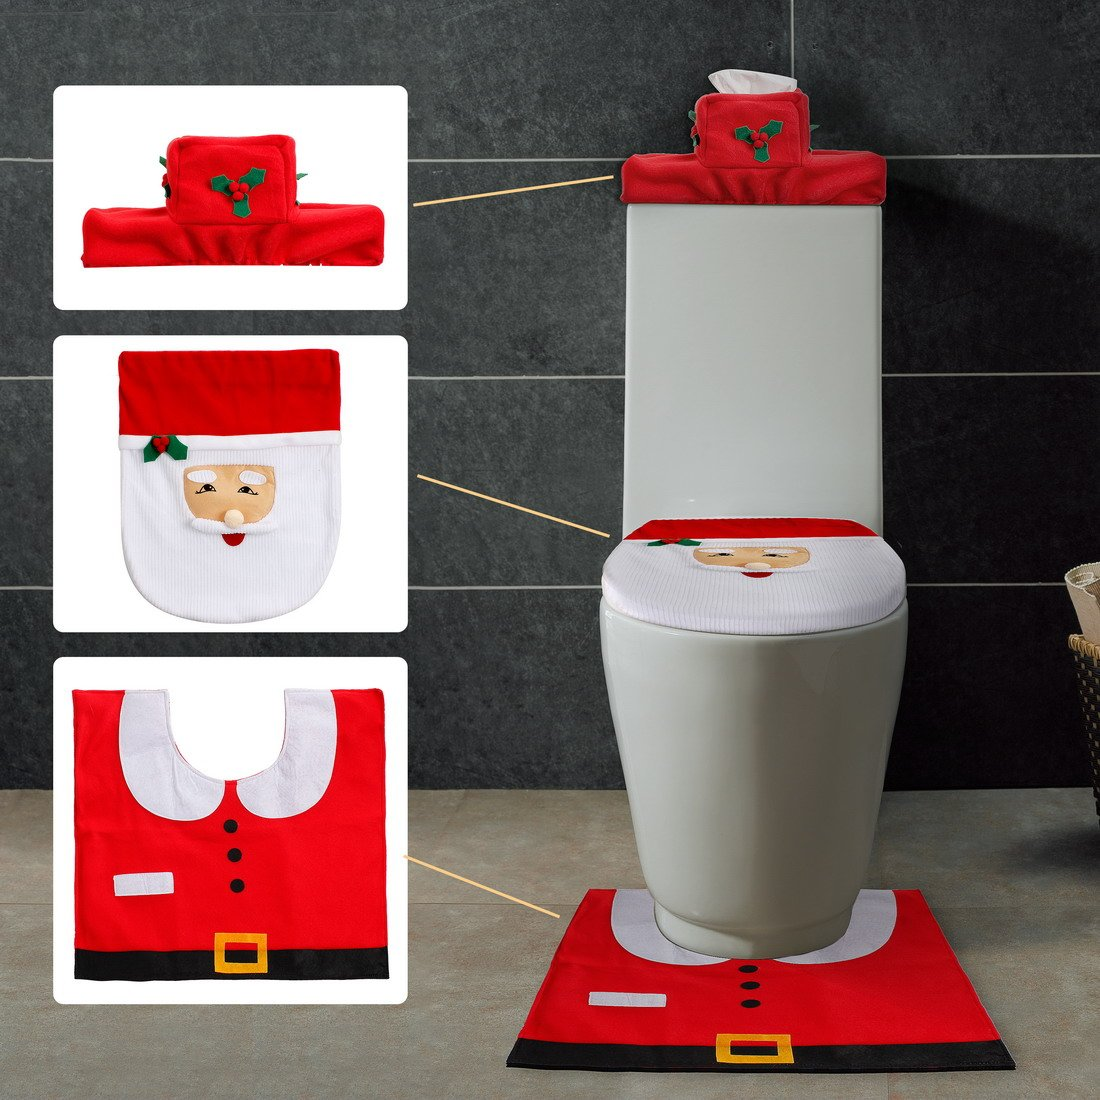 Menghao 3PCS/Set Christmas Snowman and Santa Clause Toilet Seat Cover - Tank Tissue Cover and Rug Set (red)